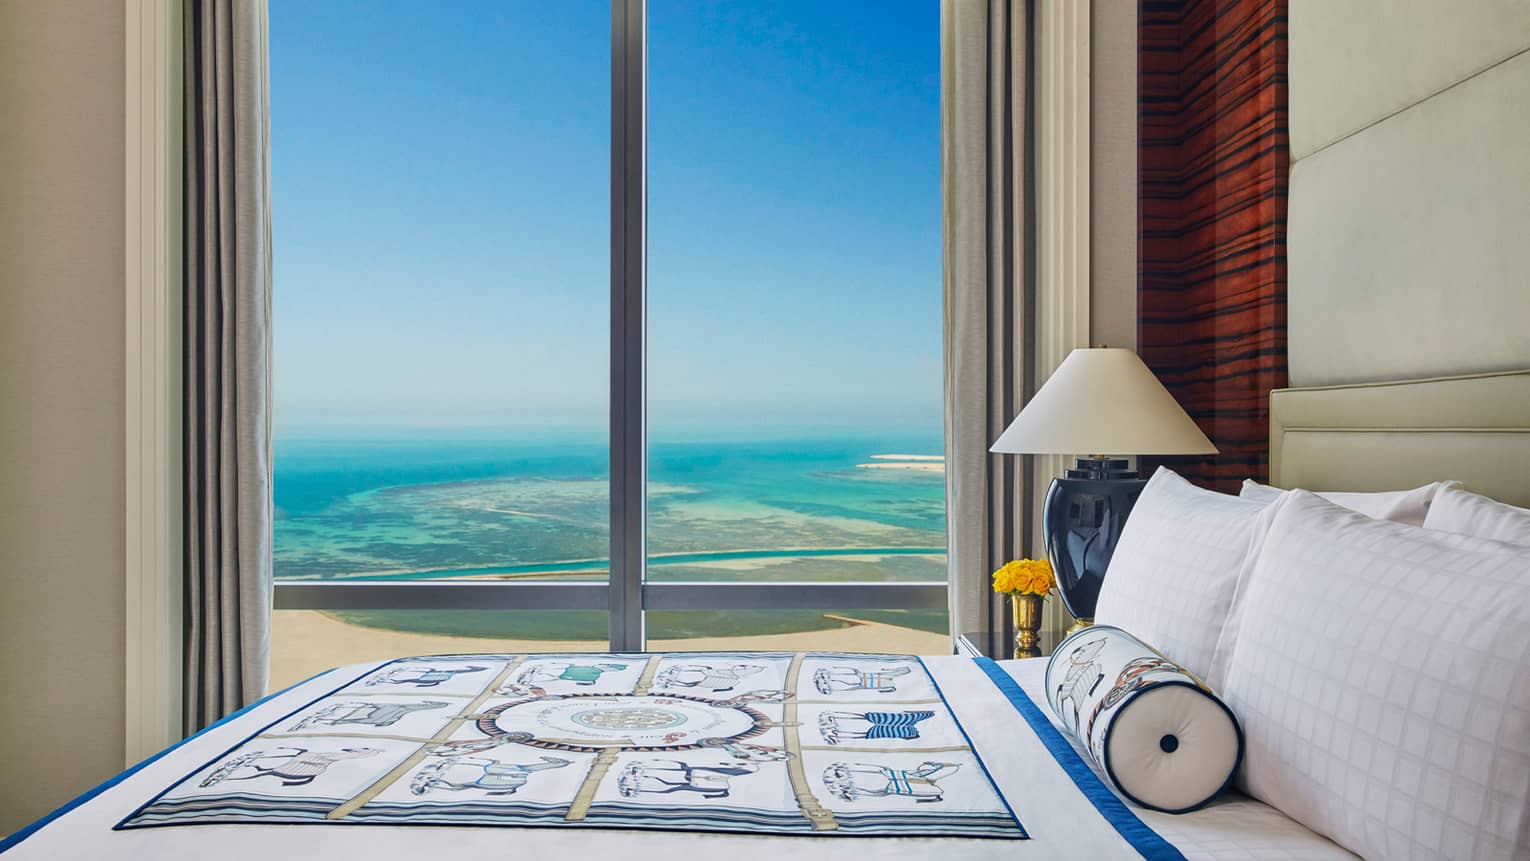 Premier Room top side view of bed with decorative blanket in front of floor-to-ceiling window with Arabian Gulf view